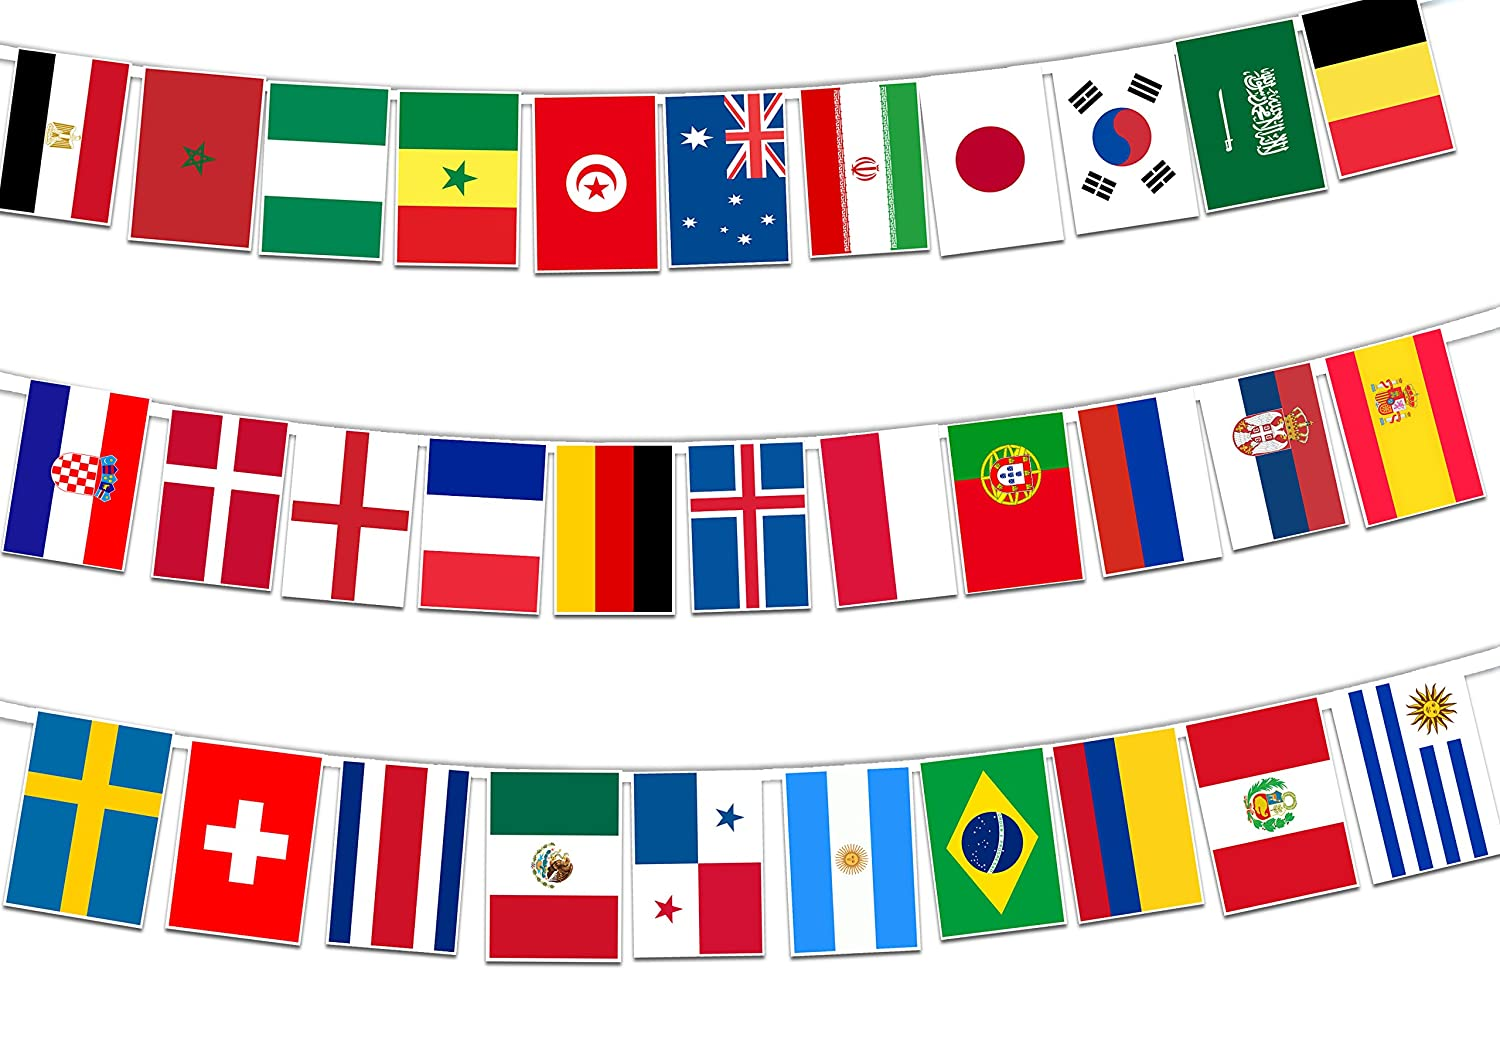 ccb1e0021655 Party Decor All Football World Cup 2018 Finalists Countries Flags -  Rectangular Bunting Banner 32 flags for simply stylish Football World Cup  party ...